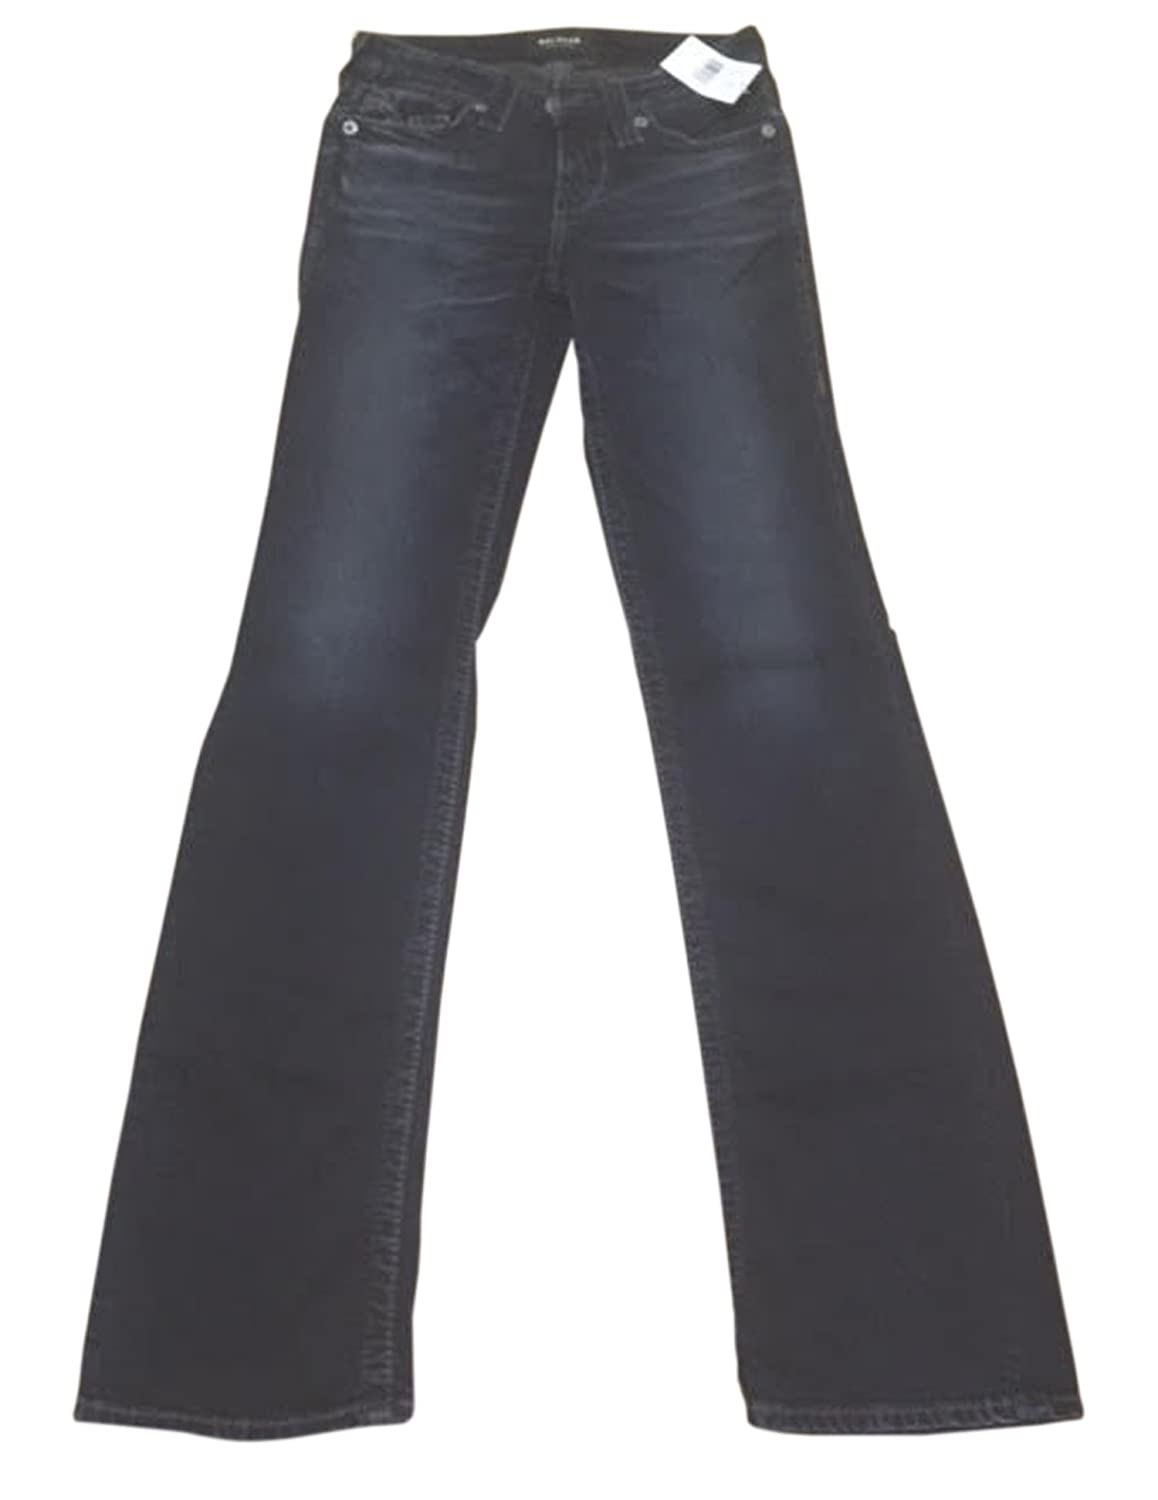 Big Star Women's Remy ZWBOOT Boot Cut Jeans Size 24L